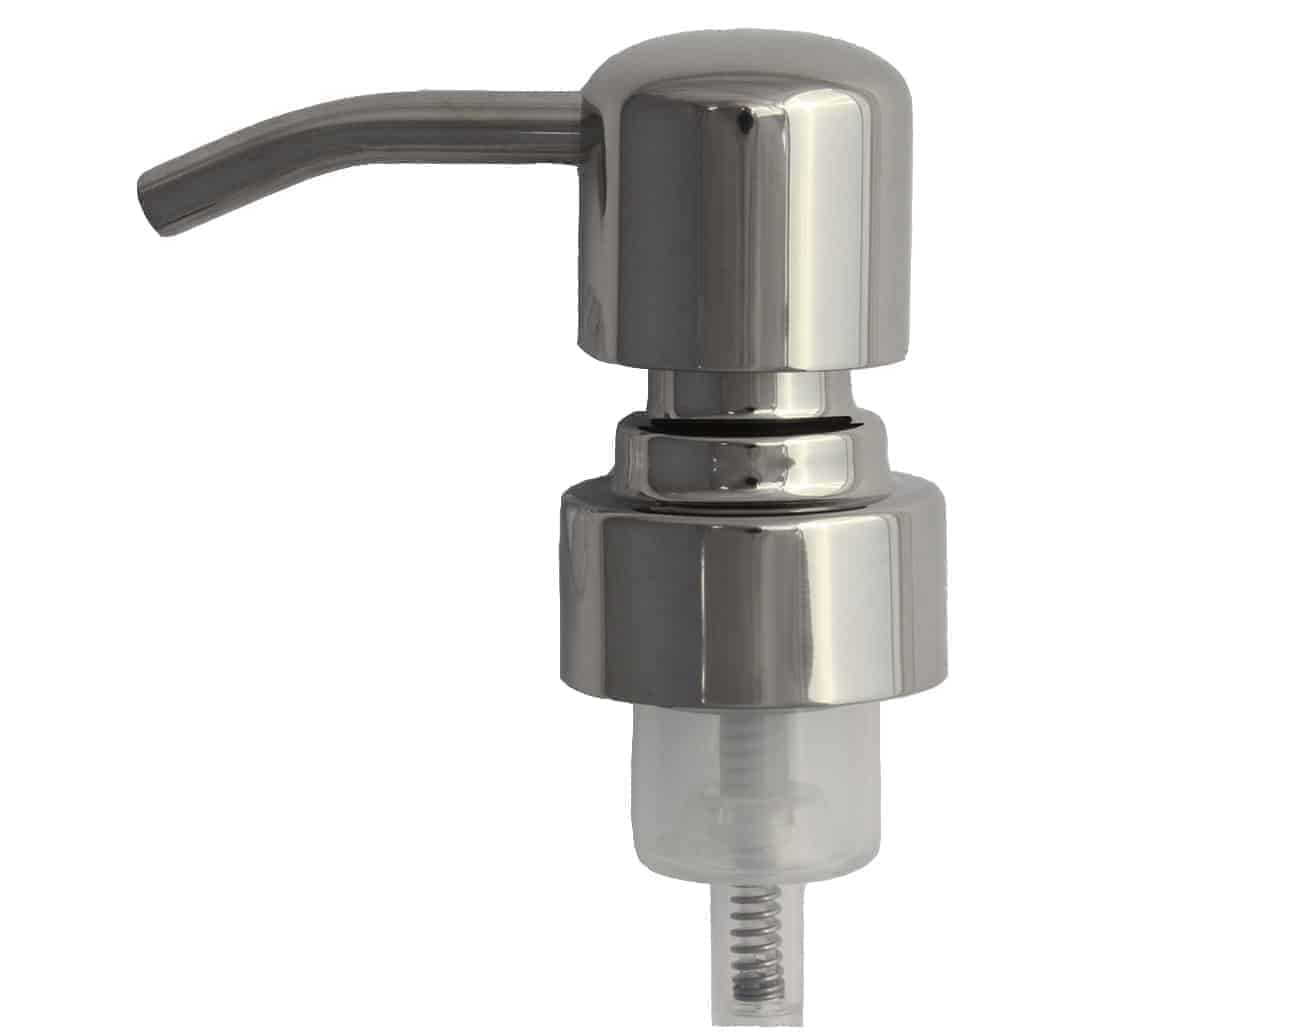 Mirror Chrome 4 Foaming Soap Pump Adapter For Mason